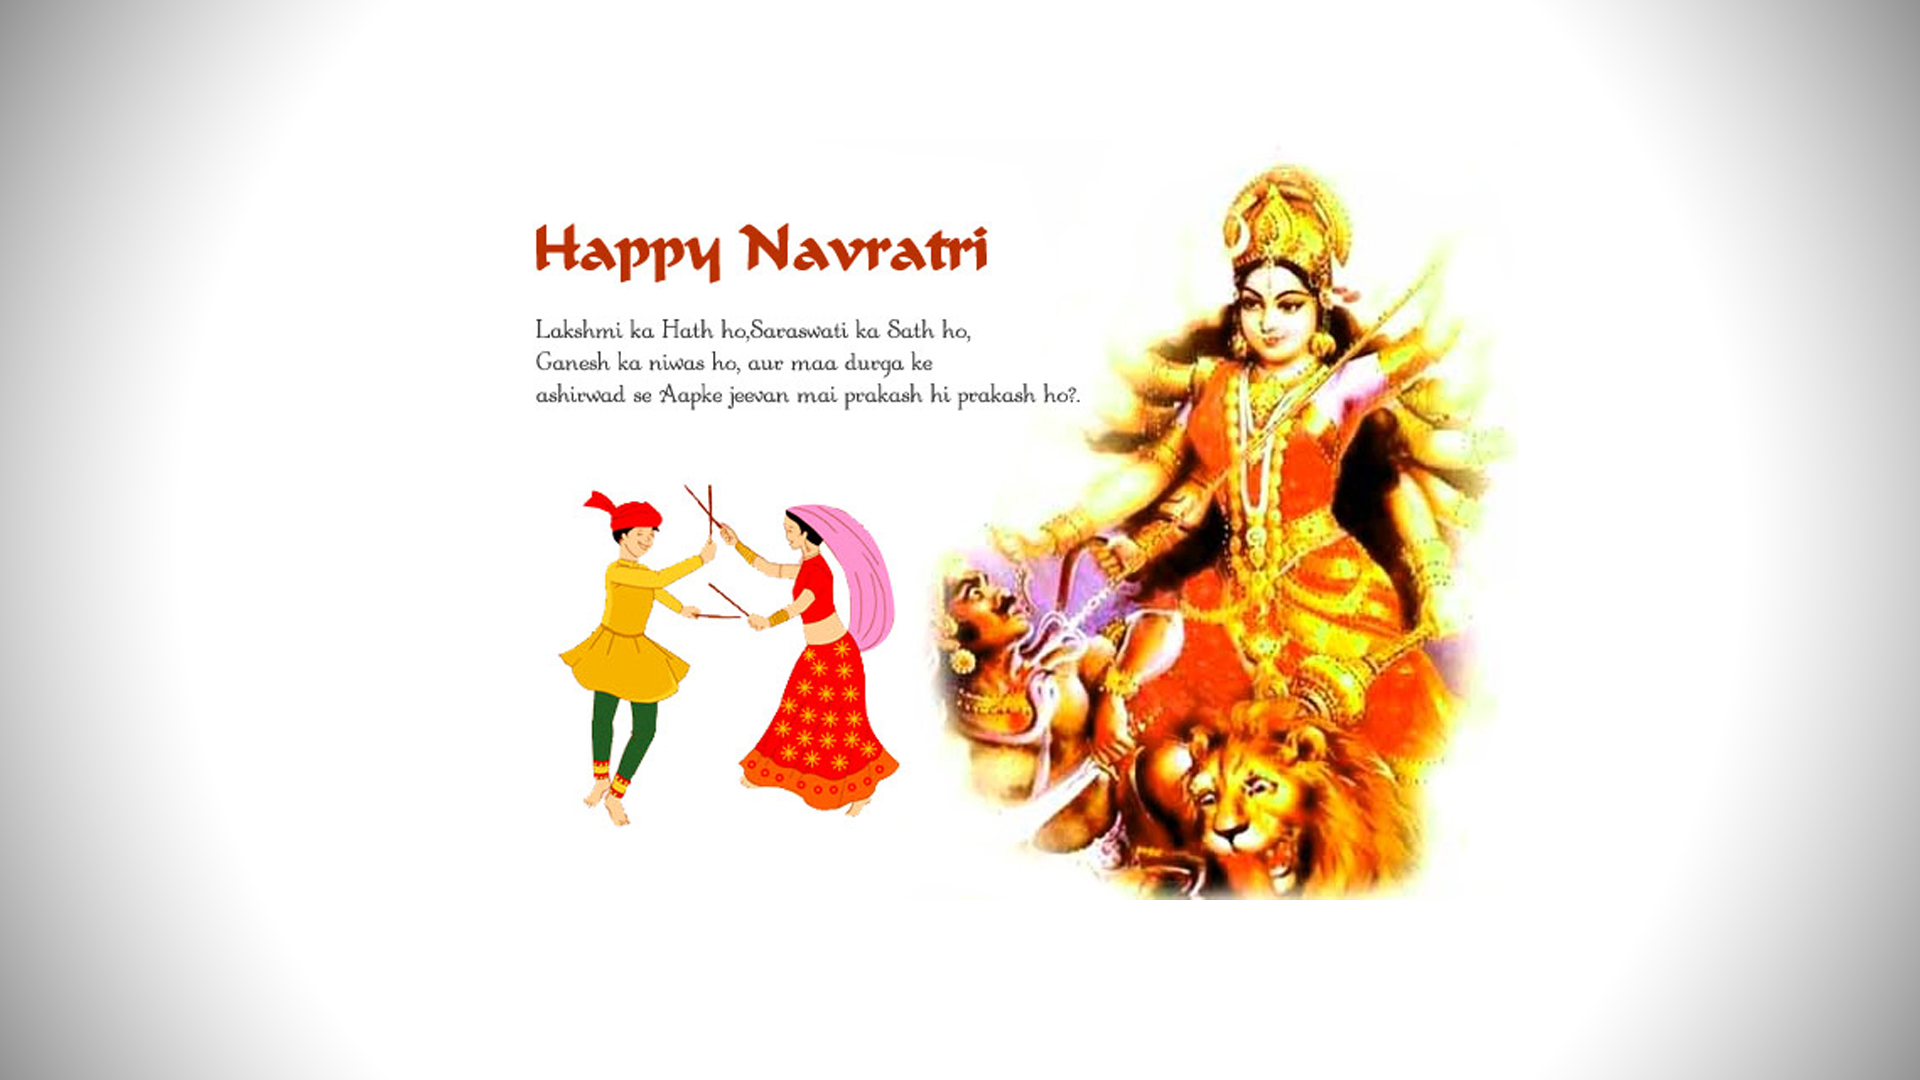 Happy navratri whatsapp status and facebook messages navratri maa durga hd images wallpapers free download kristyandbryce Choice Image